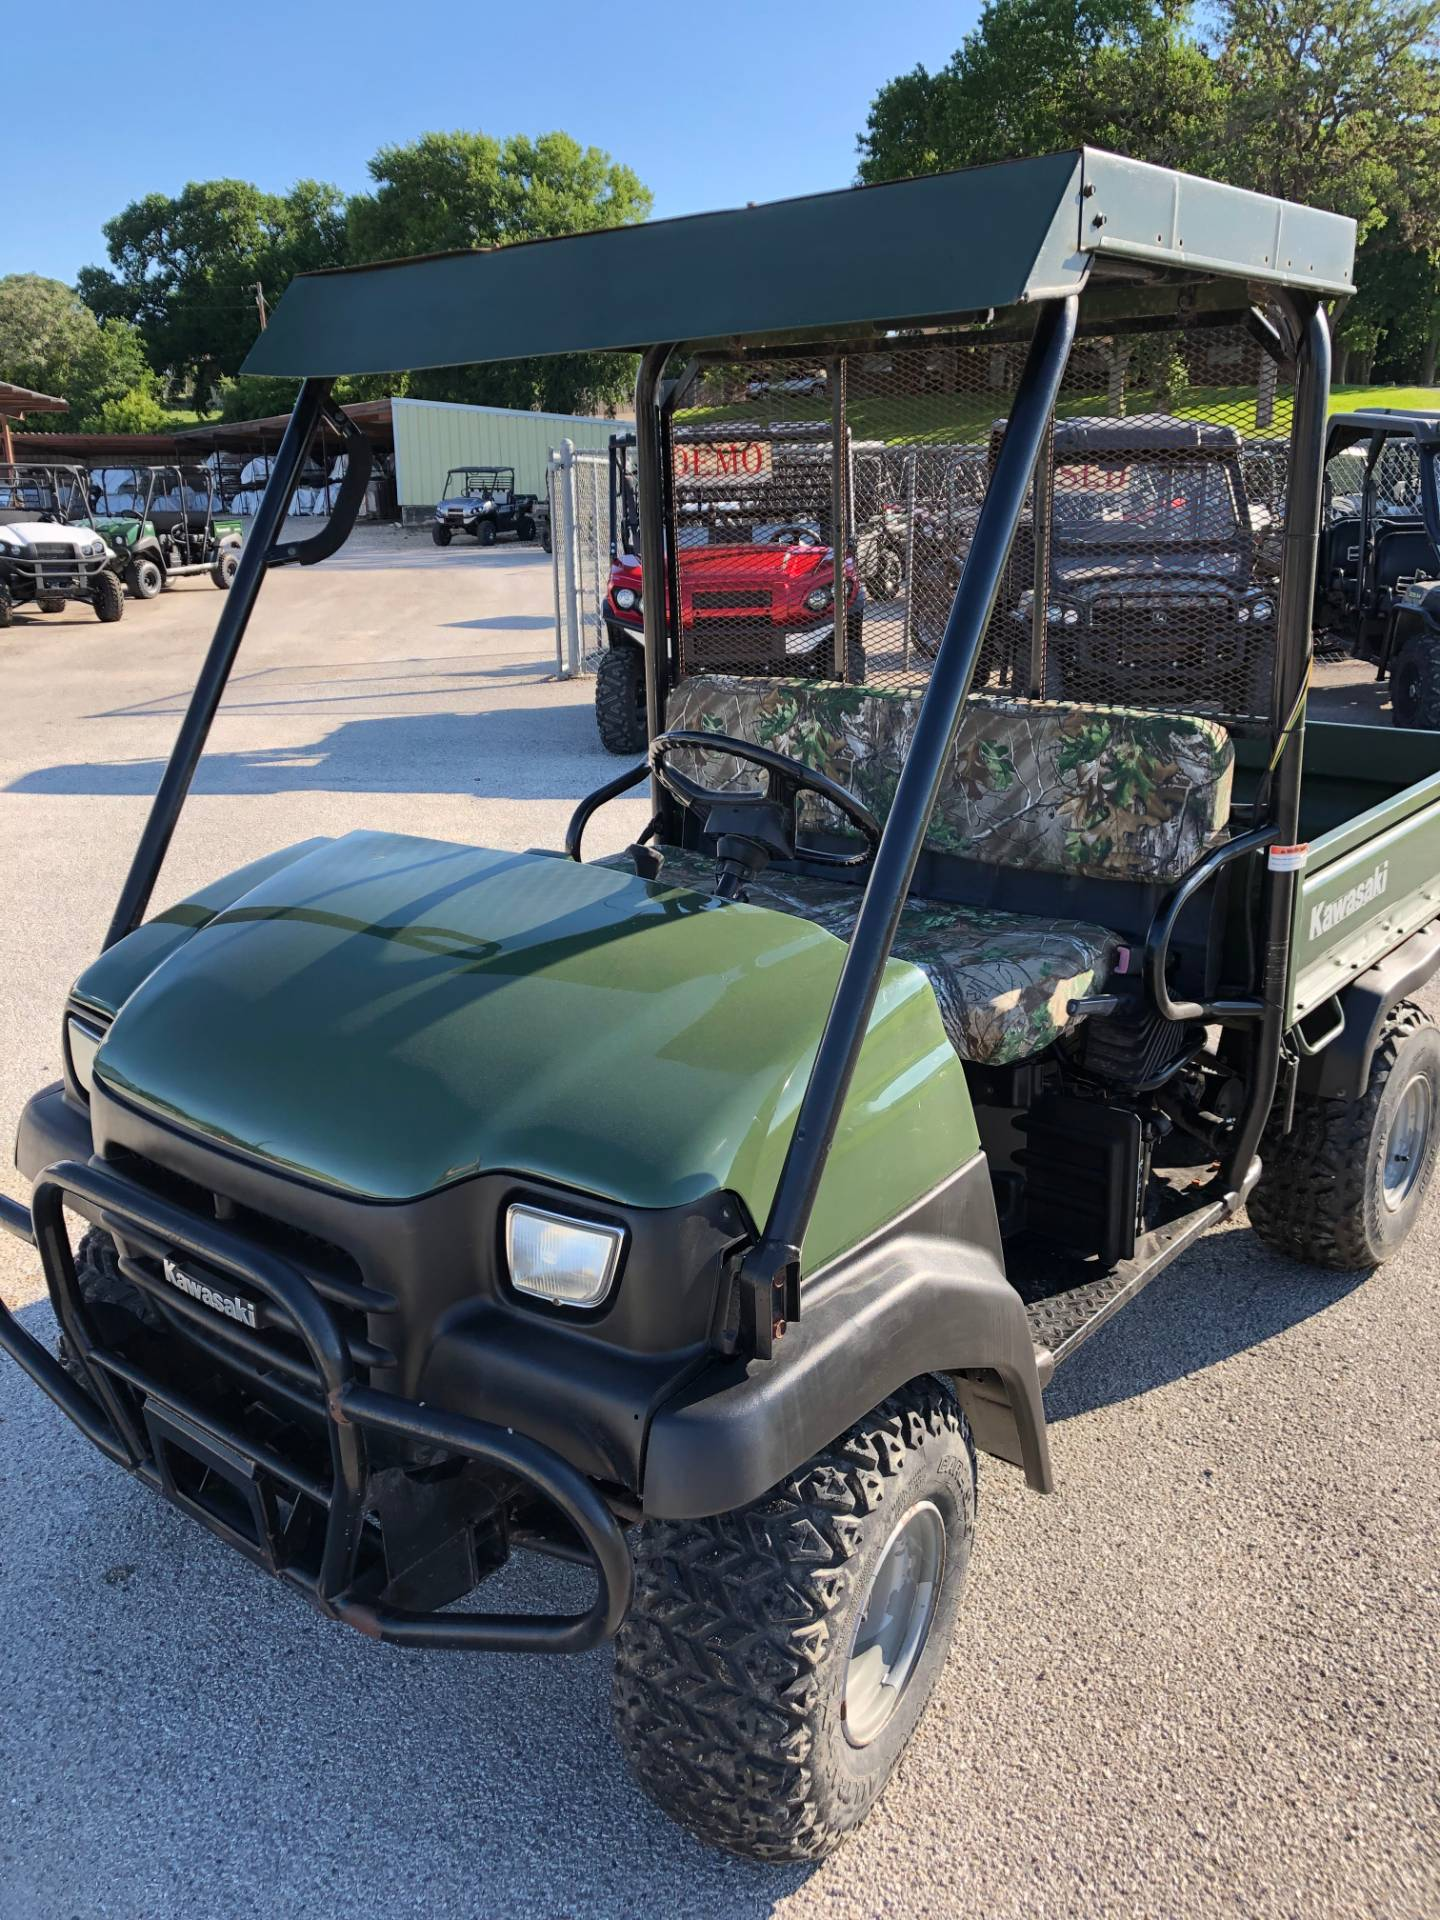 2003 Kawasaki 3010 mule in Kerrville, Texas - Photo 2